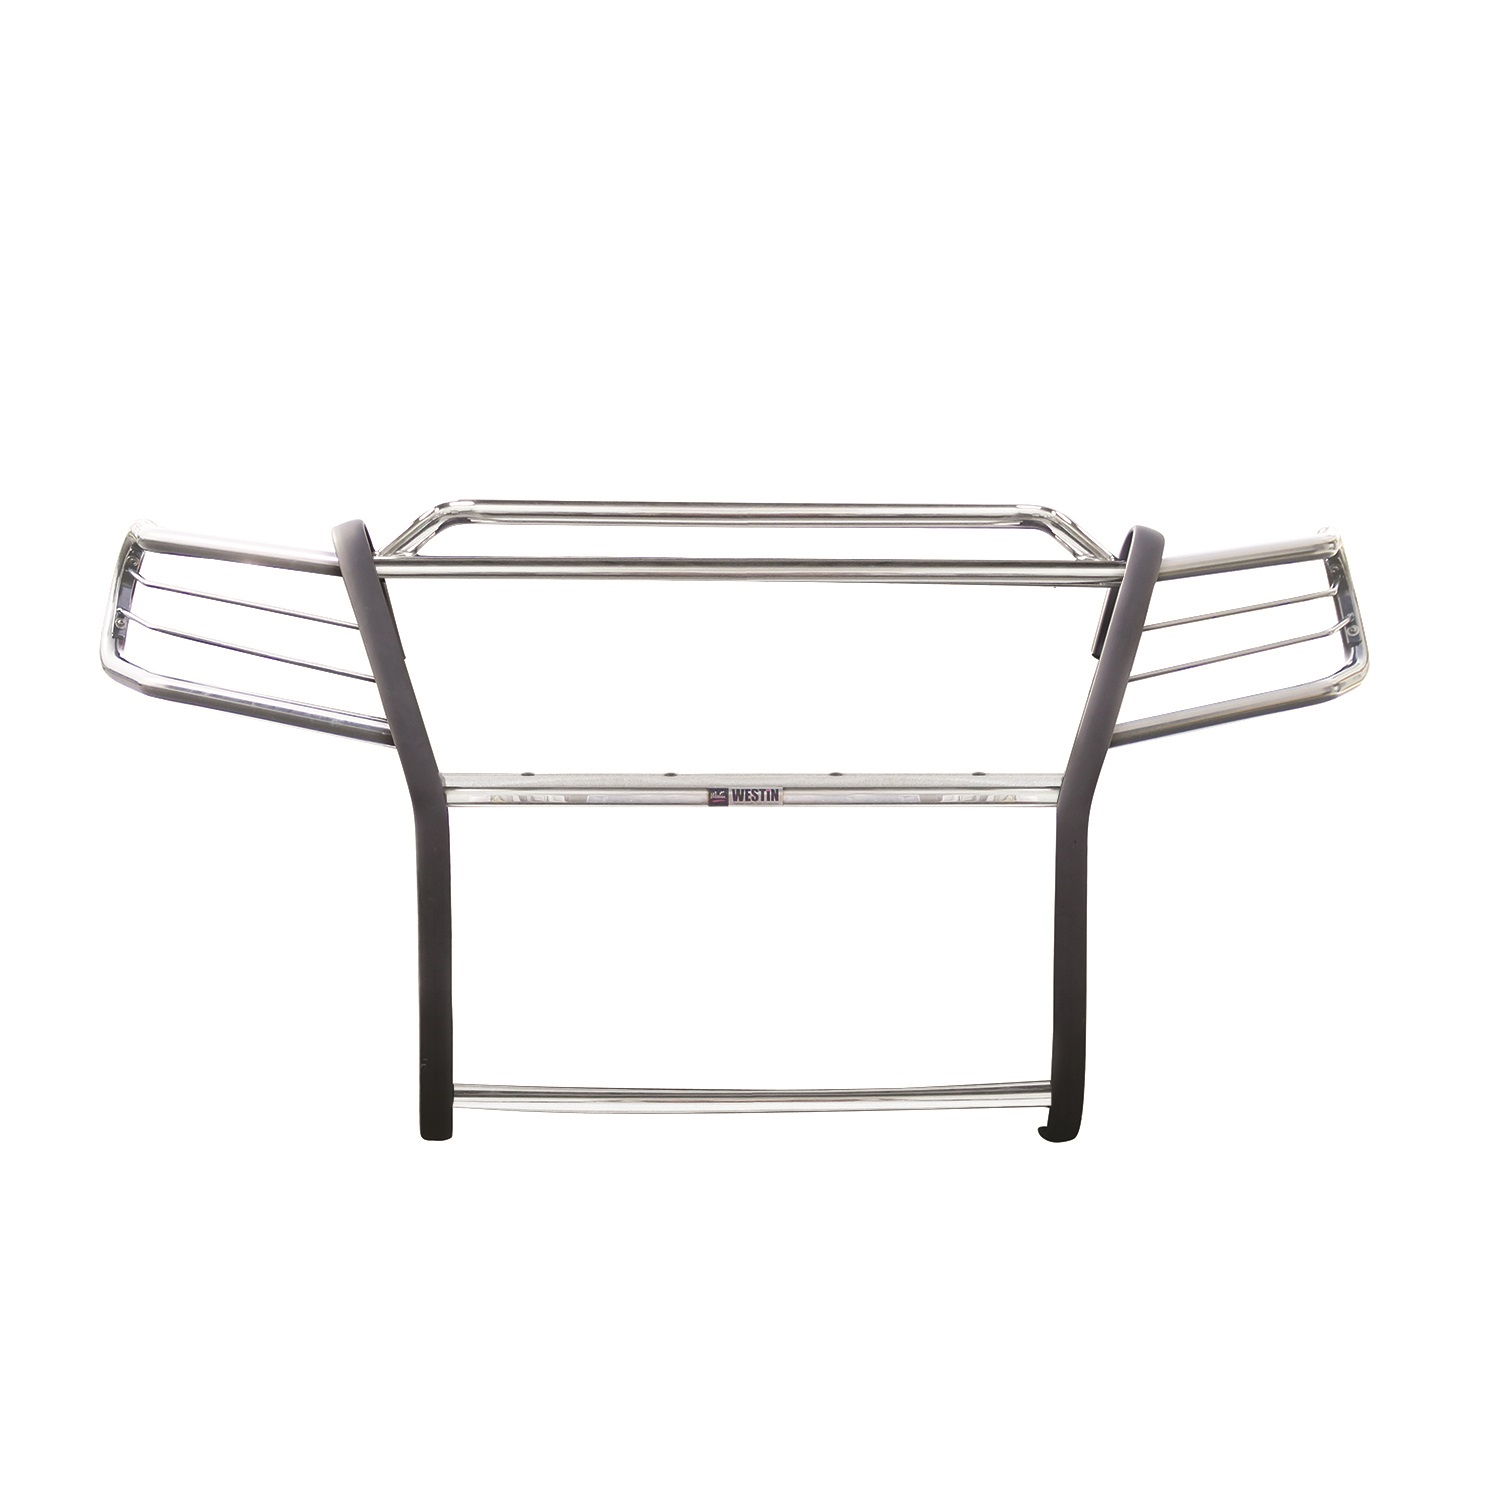 Westin 45 Stainless Steel Sportsman Grille Guard